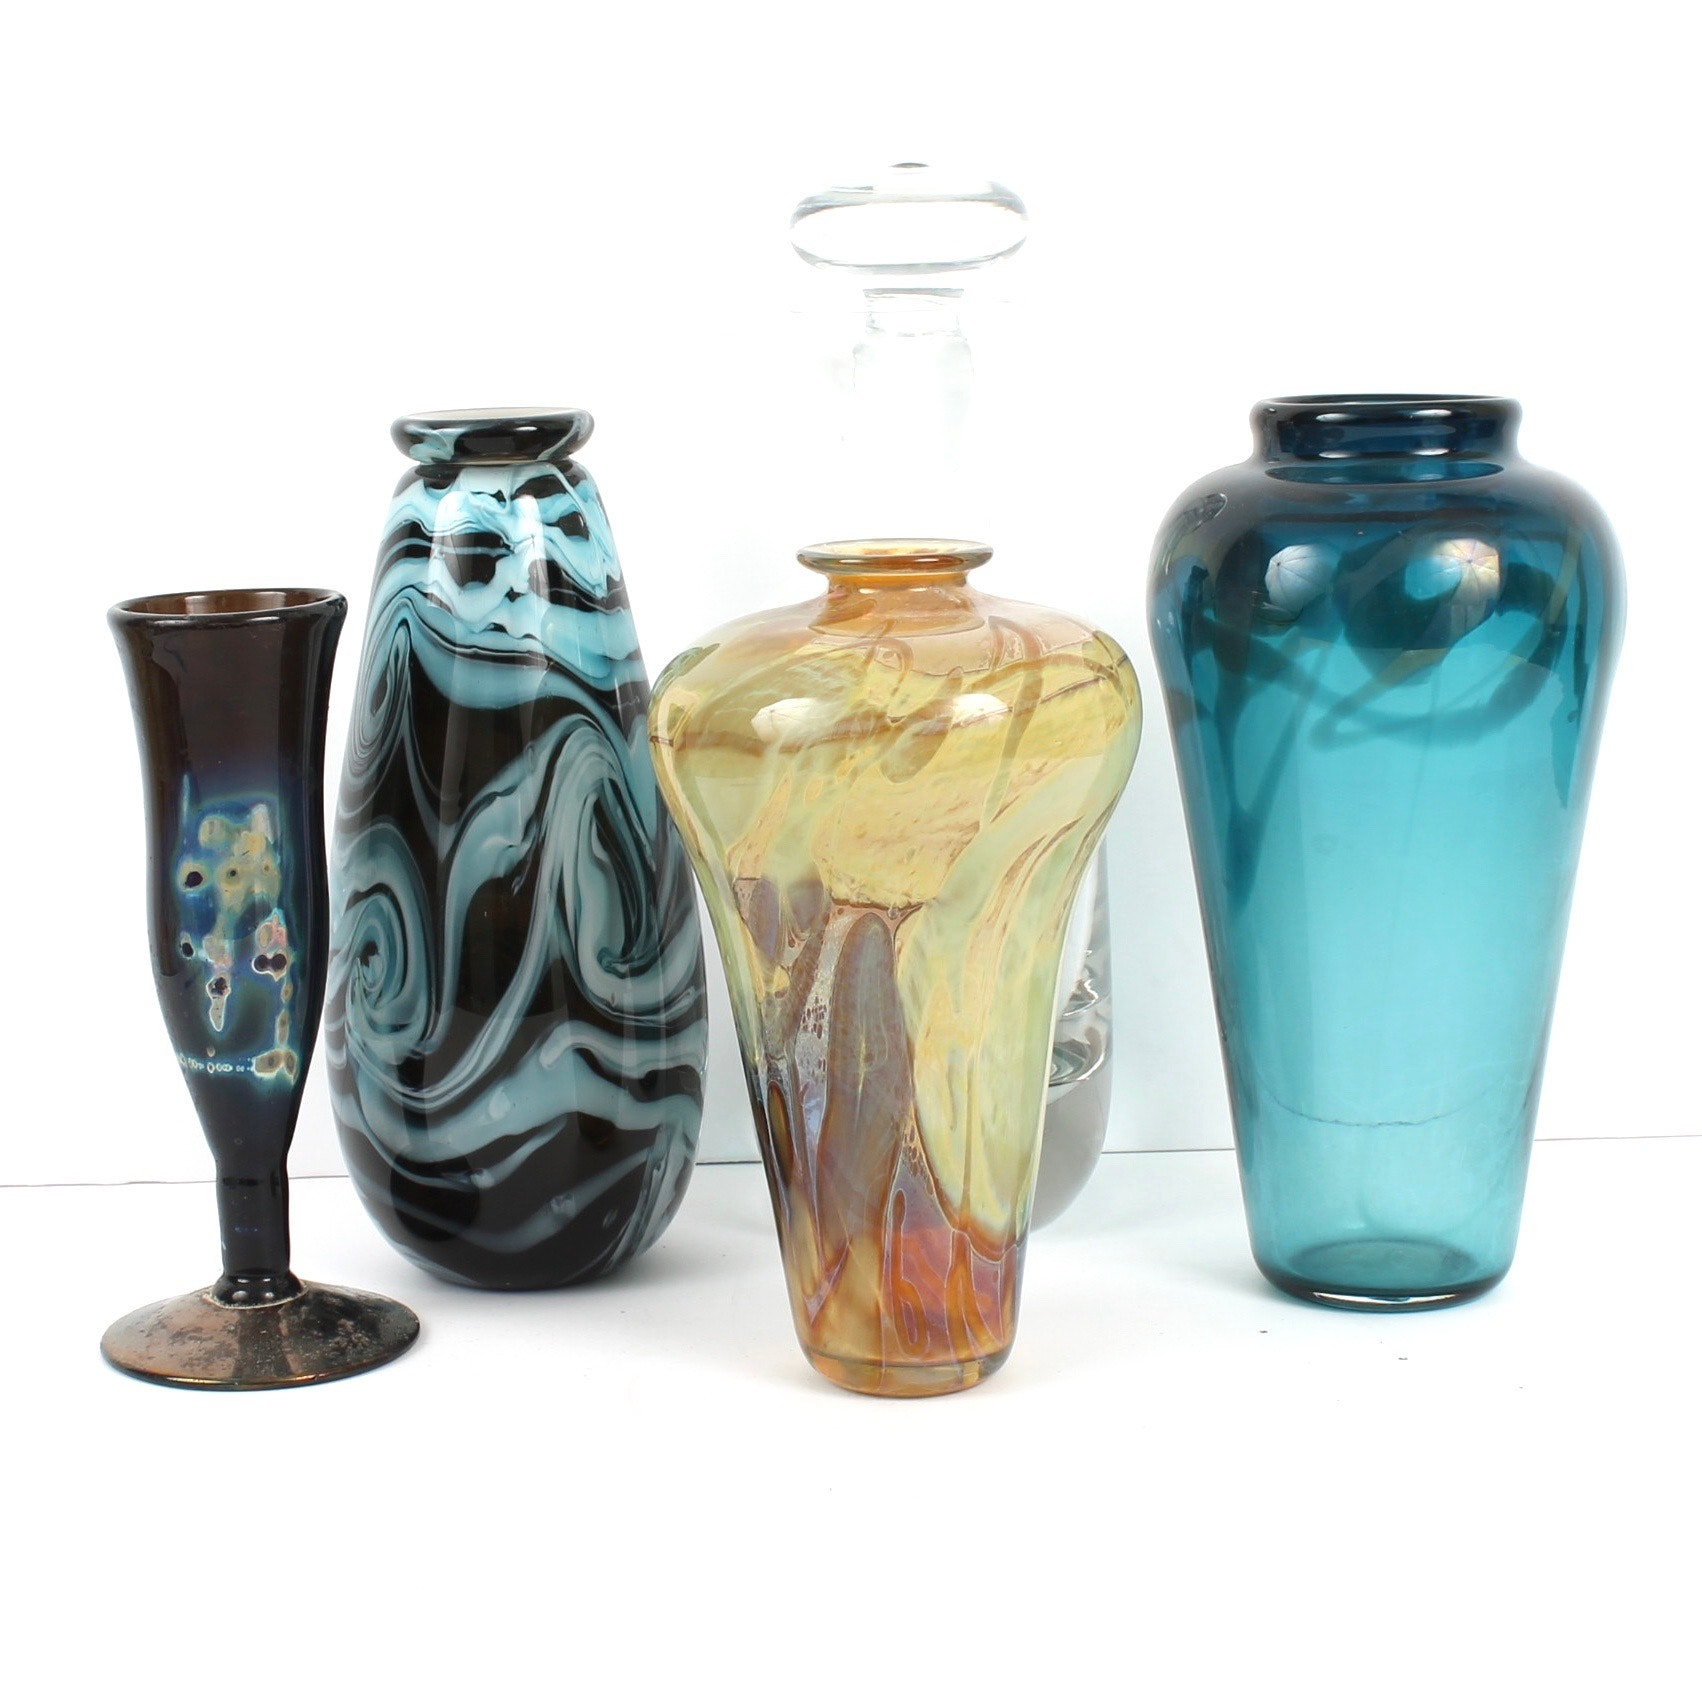 Art Glass Vases and Krosno Decanter